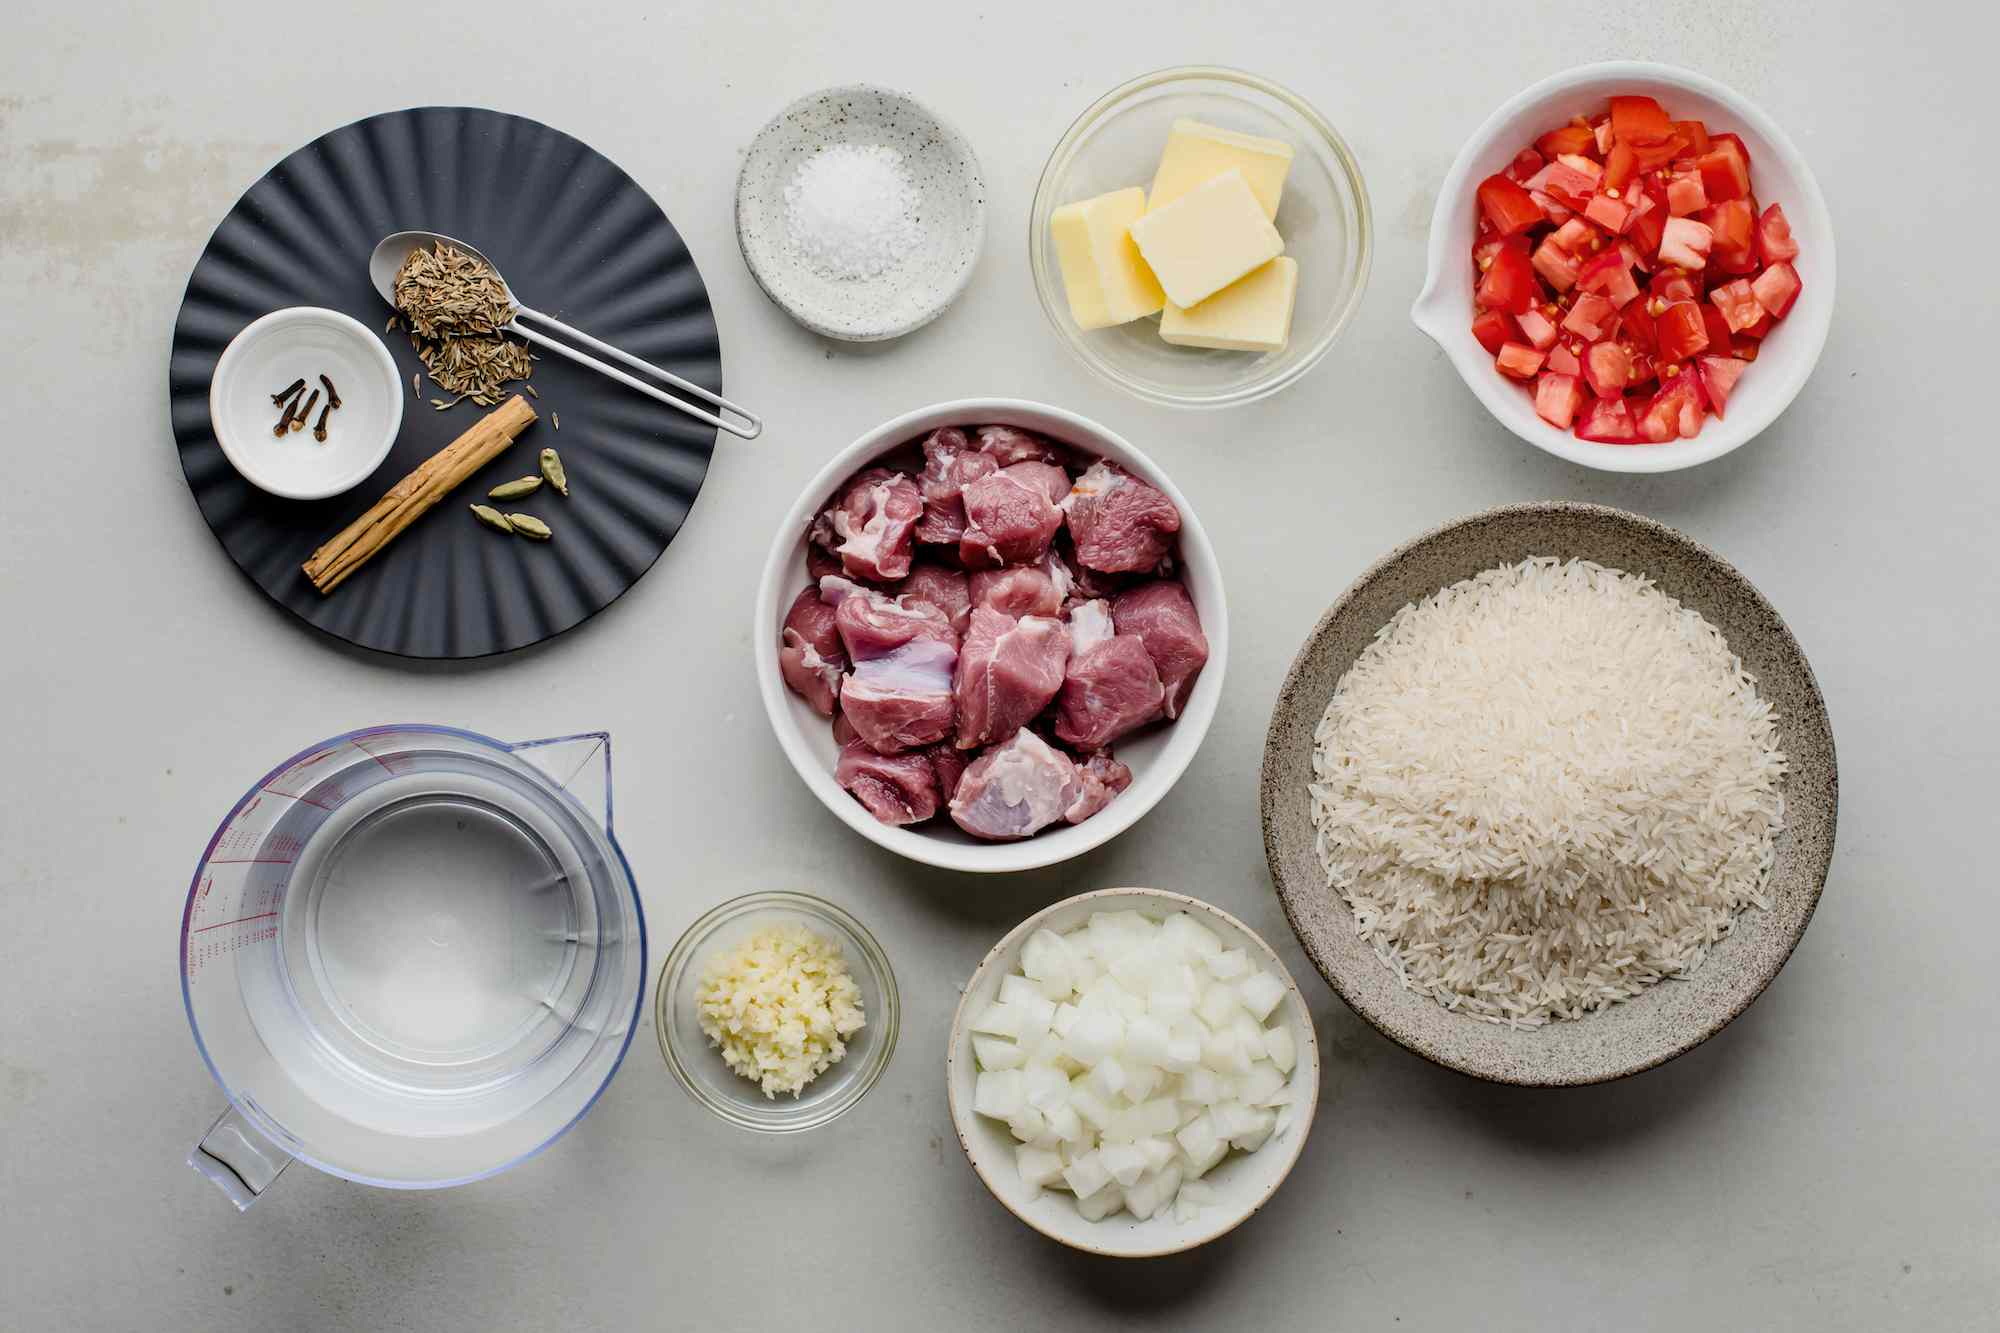 Ingredients for spiced Somali rice